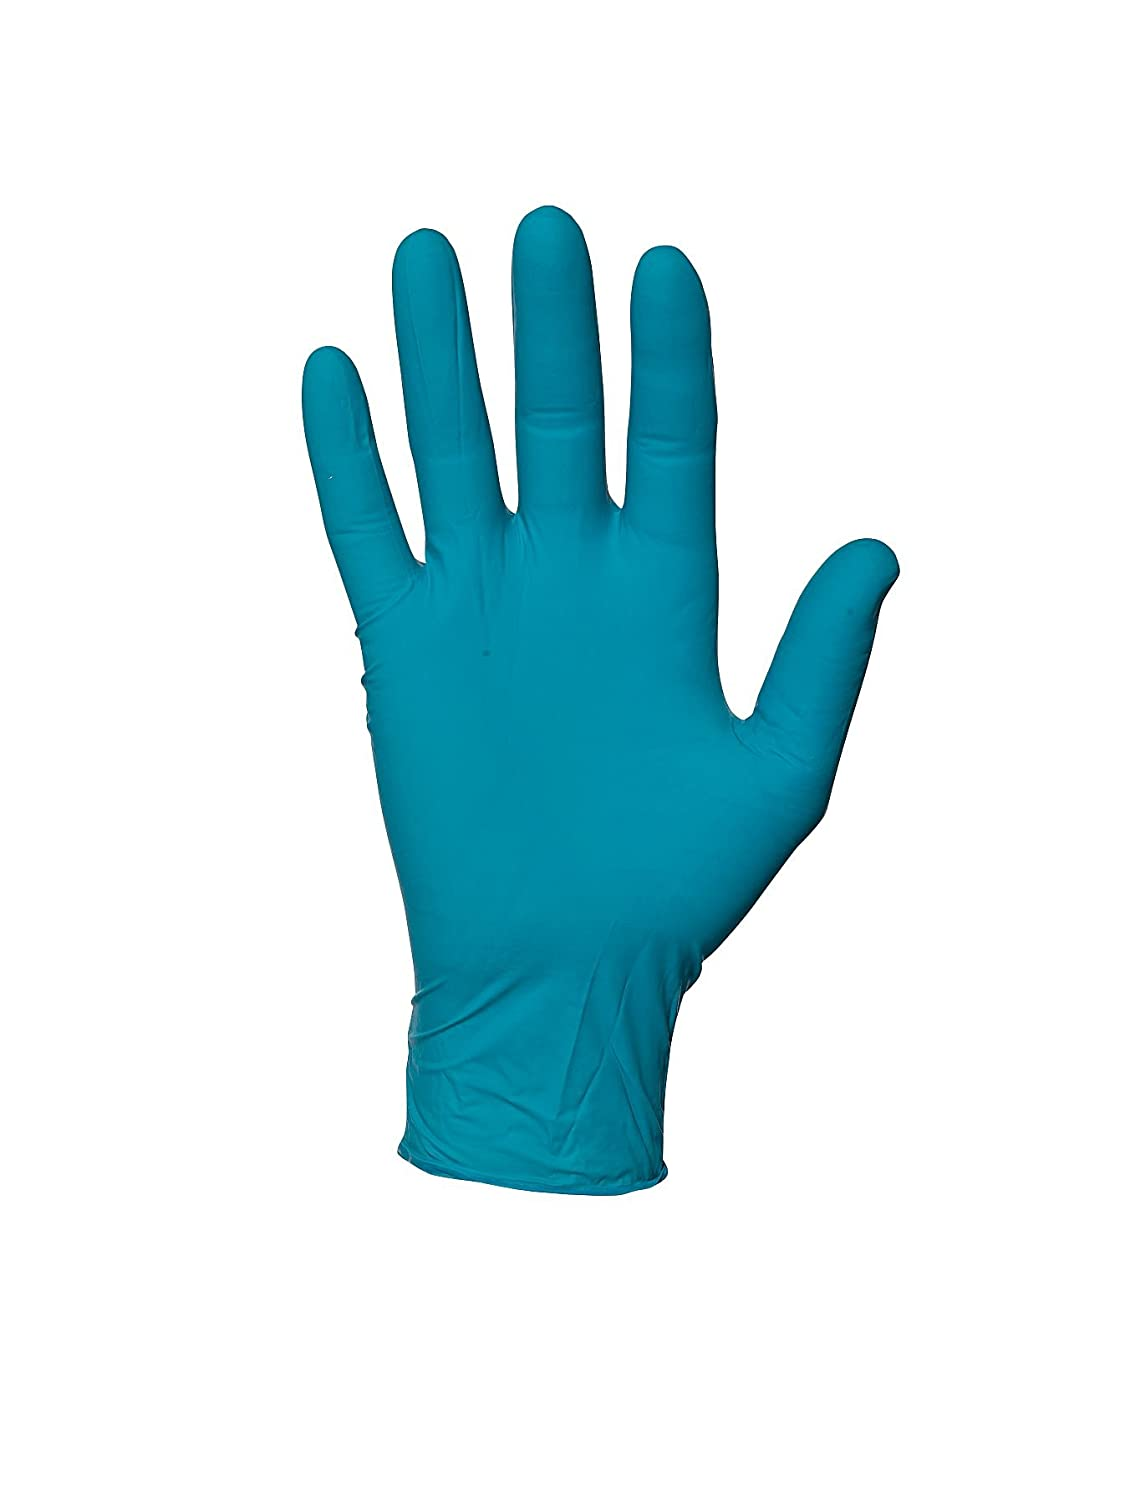 92-600 ANSELL SIZE 7.5/8 TOUCHNTUFF CHEMICAL SPLASH RESISTANT AMBIDEXTROUS DISPOSABLE NITRILE POWDER FREE SMOOTH FINGERTIP GLOVES GREEN 240MM PACK OF 100 - CAT III - EN374 - EN421